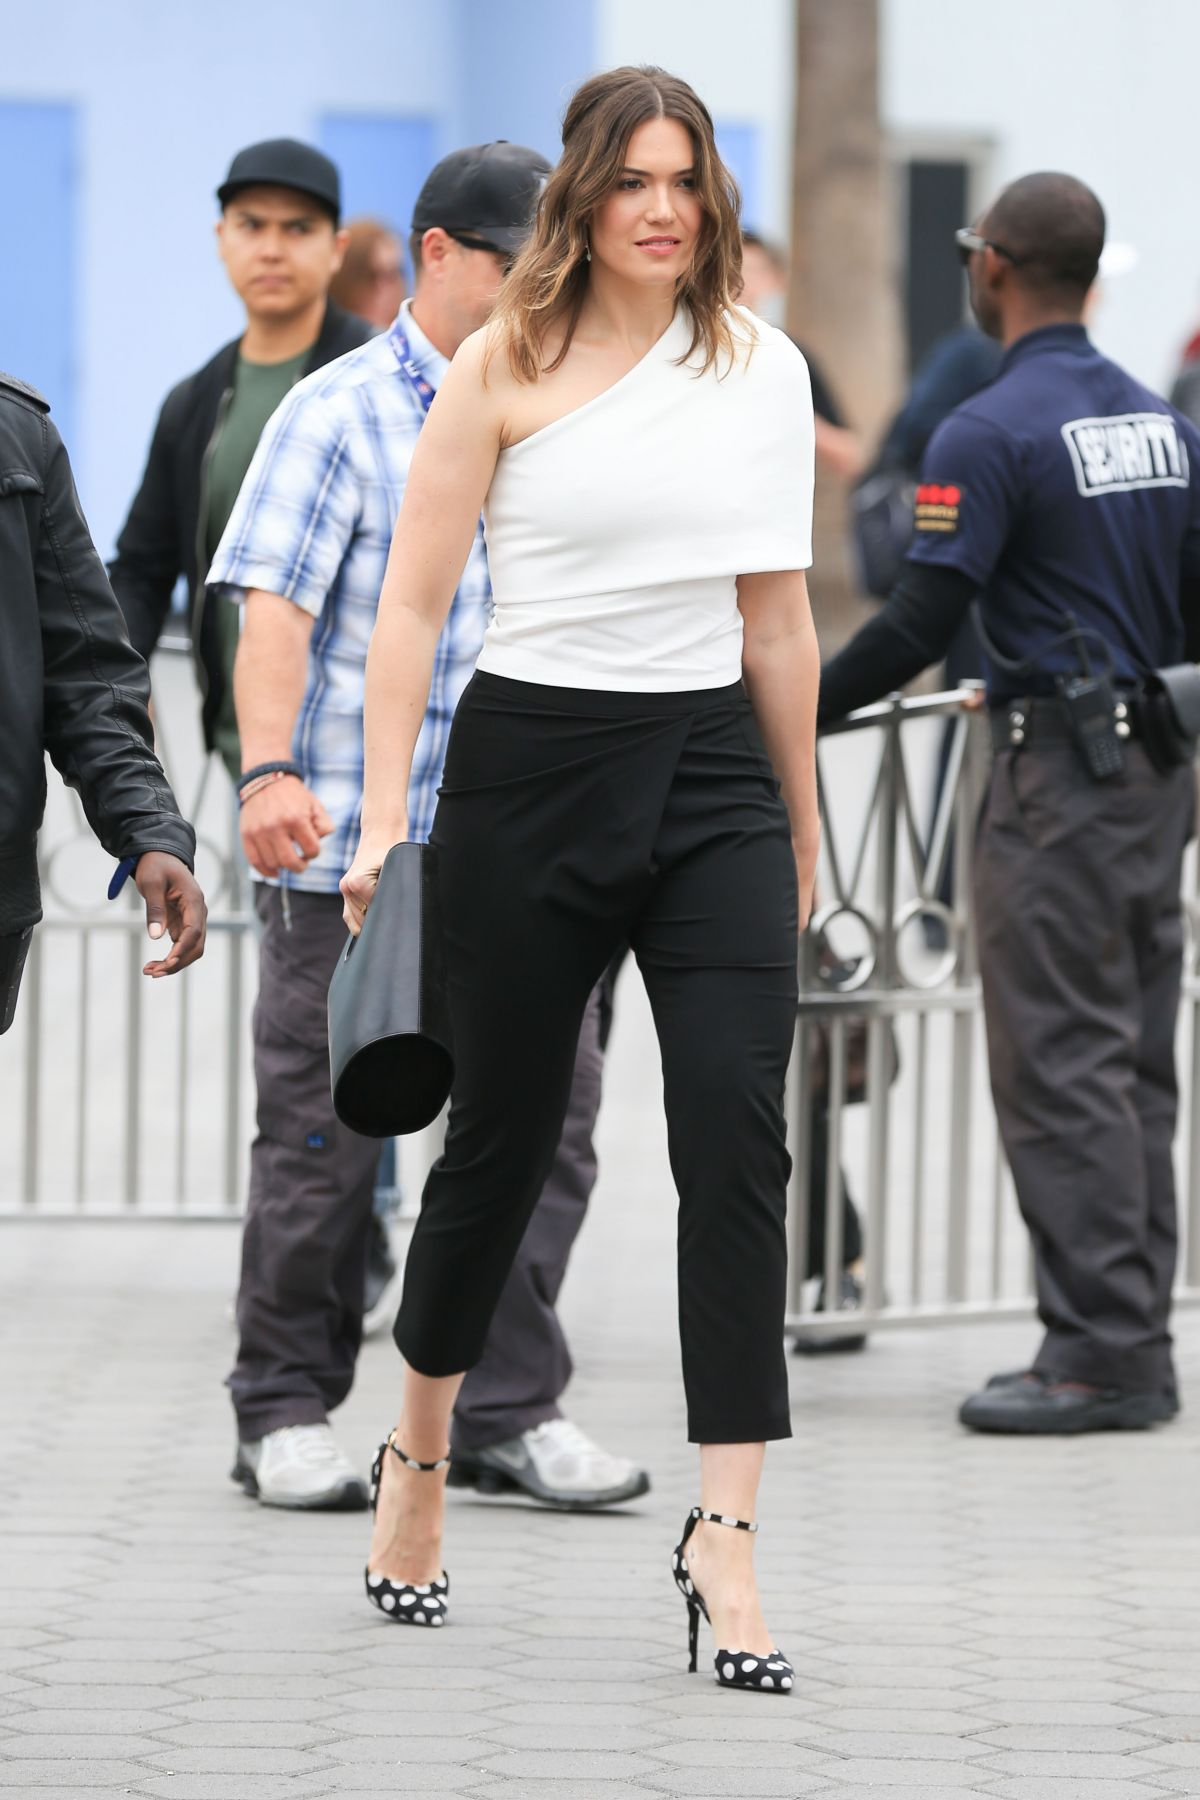 Mandy Moore At 'Extra' in Universal City   mandy-moore-at-extra-in-universal-city-_5